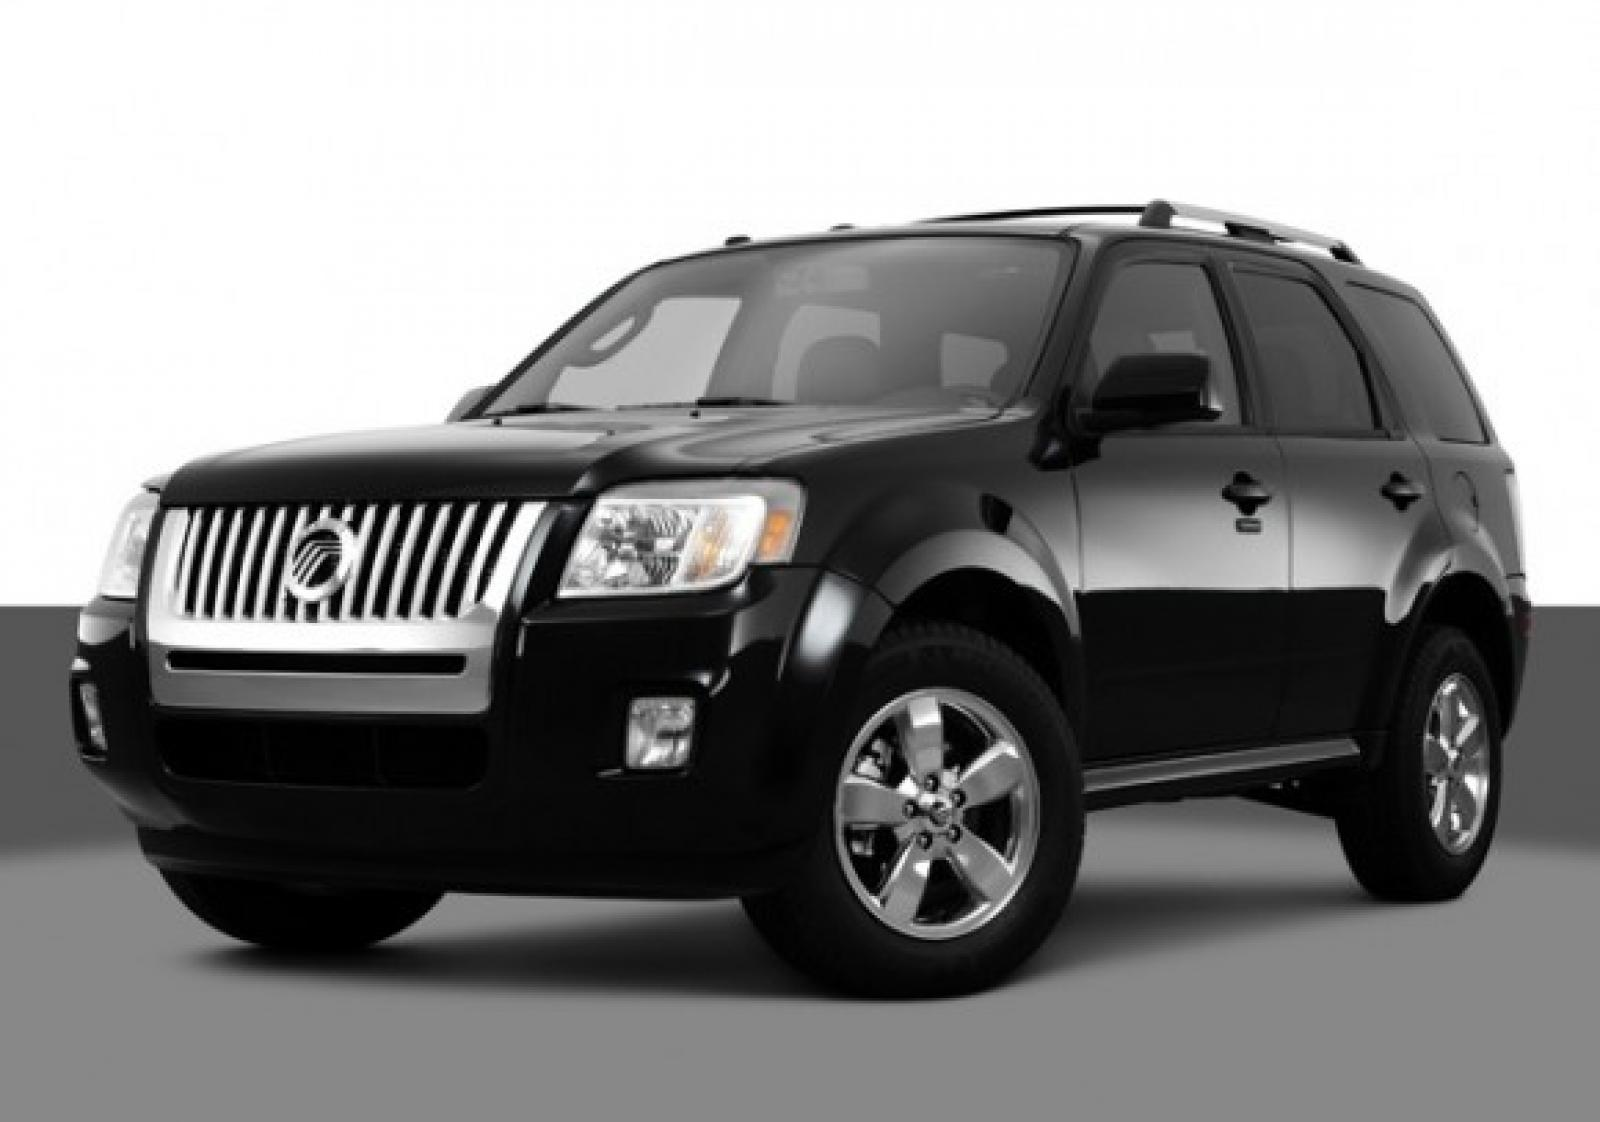 800 1024 1280 1600 origin 2011 mercury mariner. Cars Review. Best American Auto & Cars Review